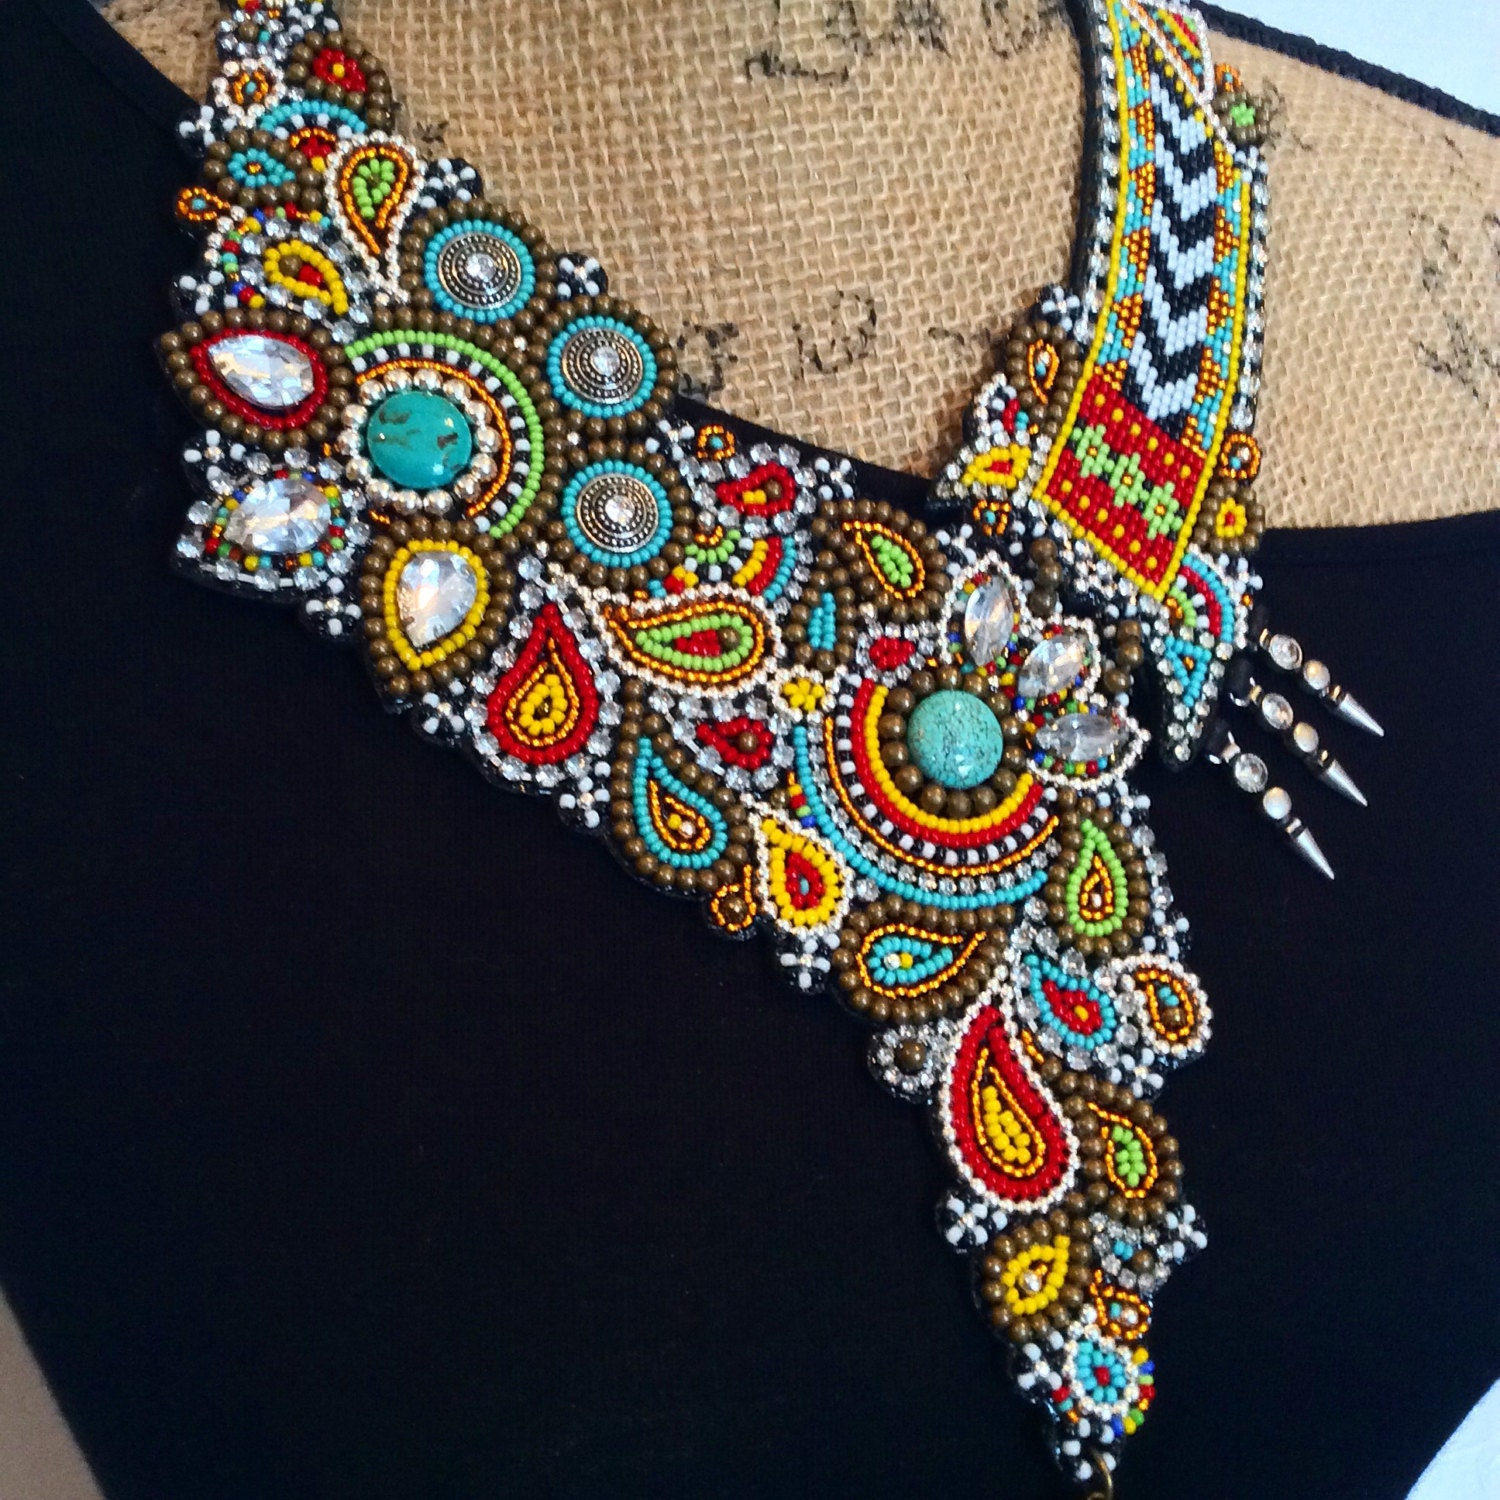 Asymmetrical bead embroidery necklace with tassel statement